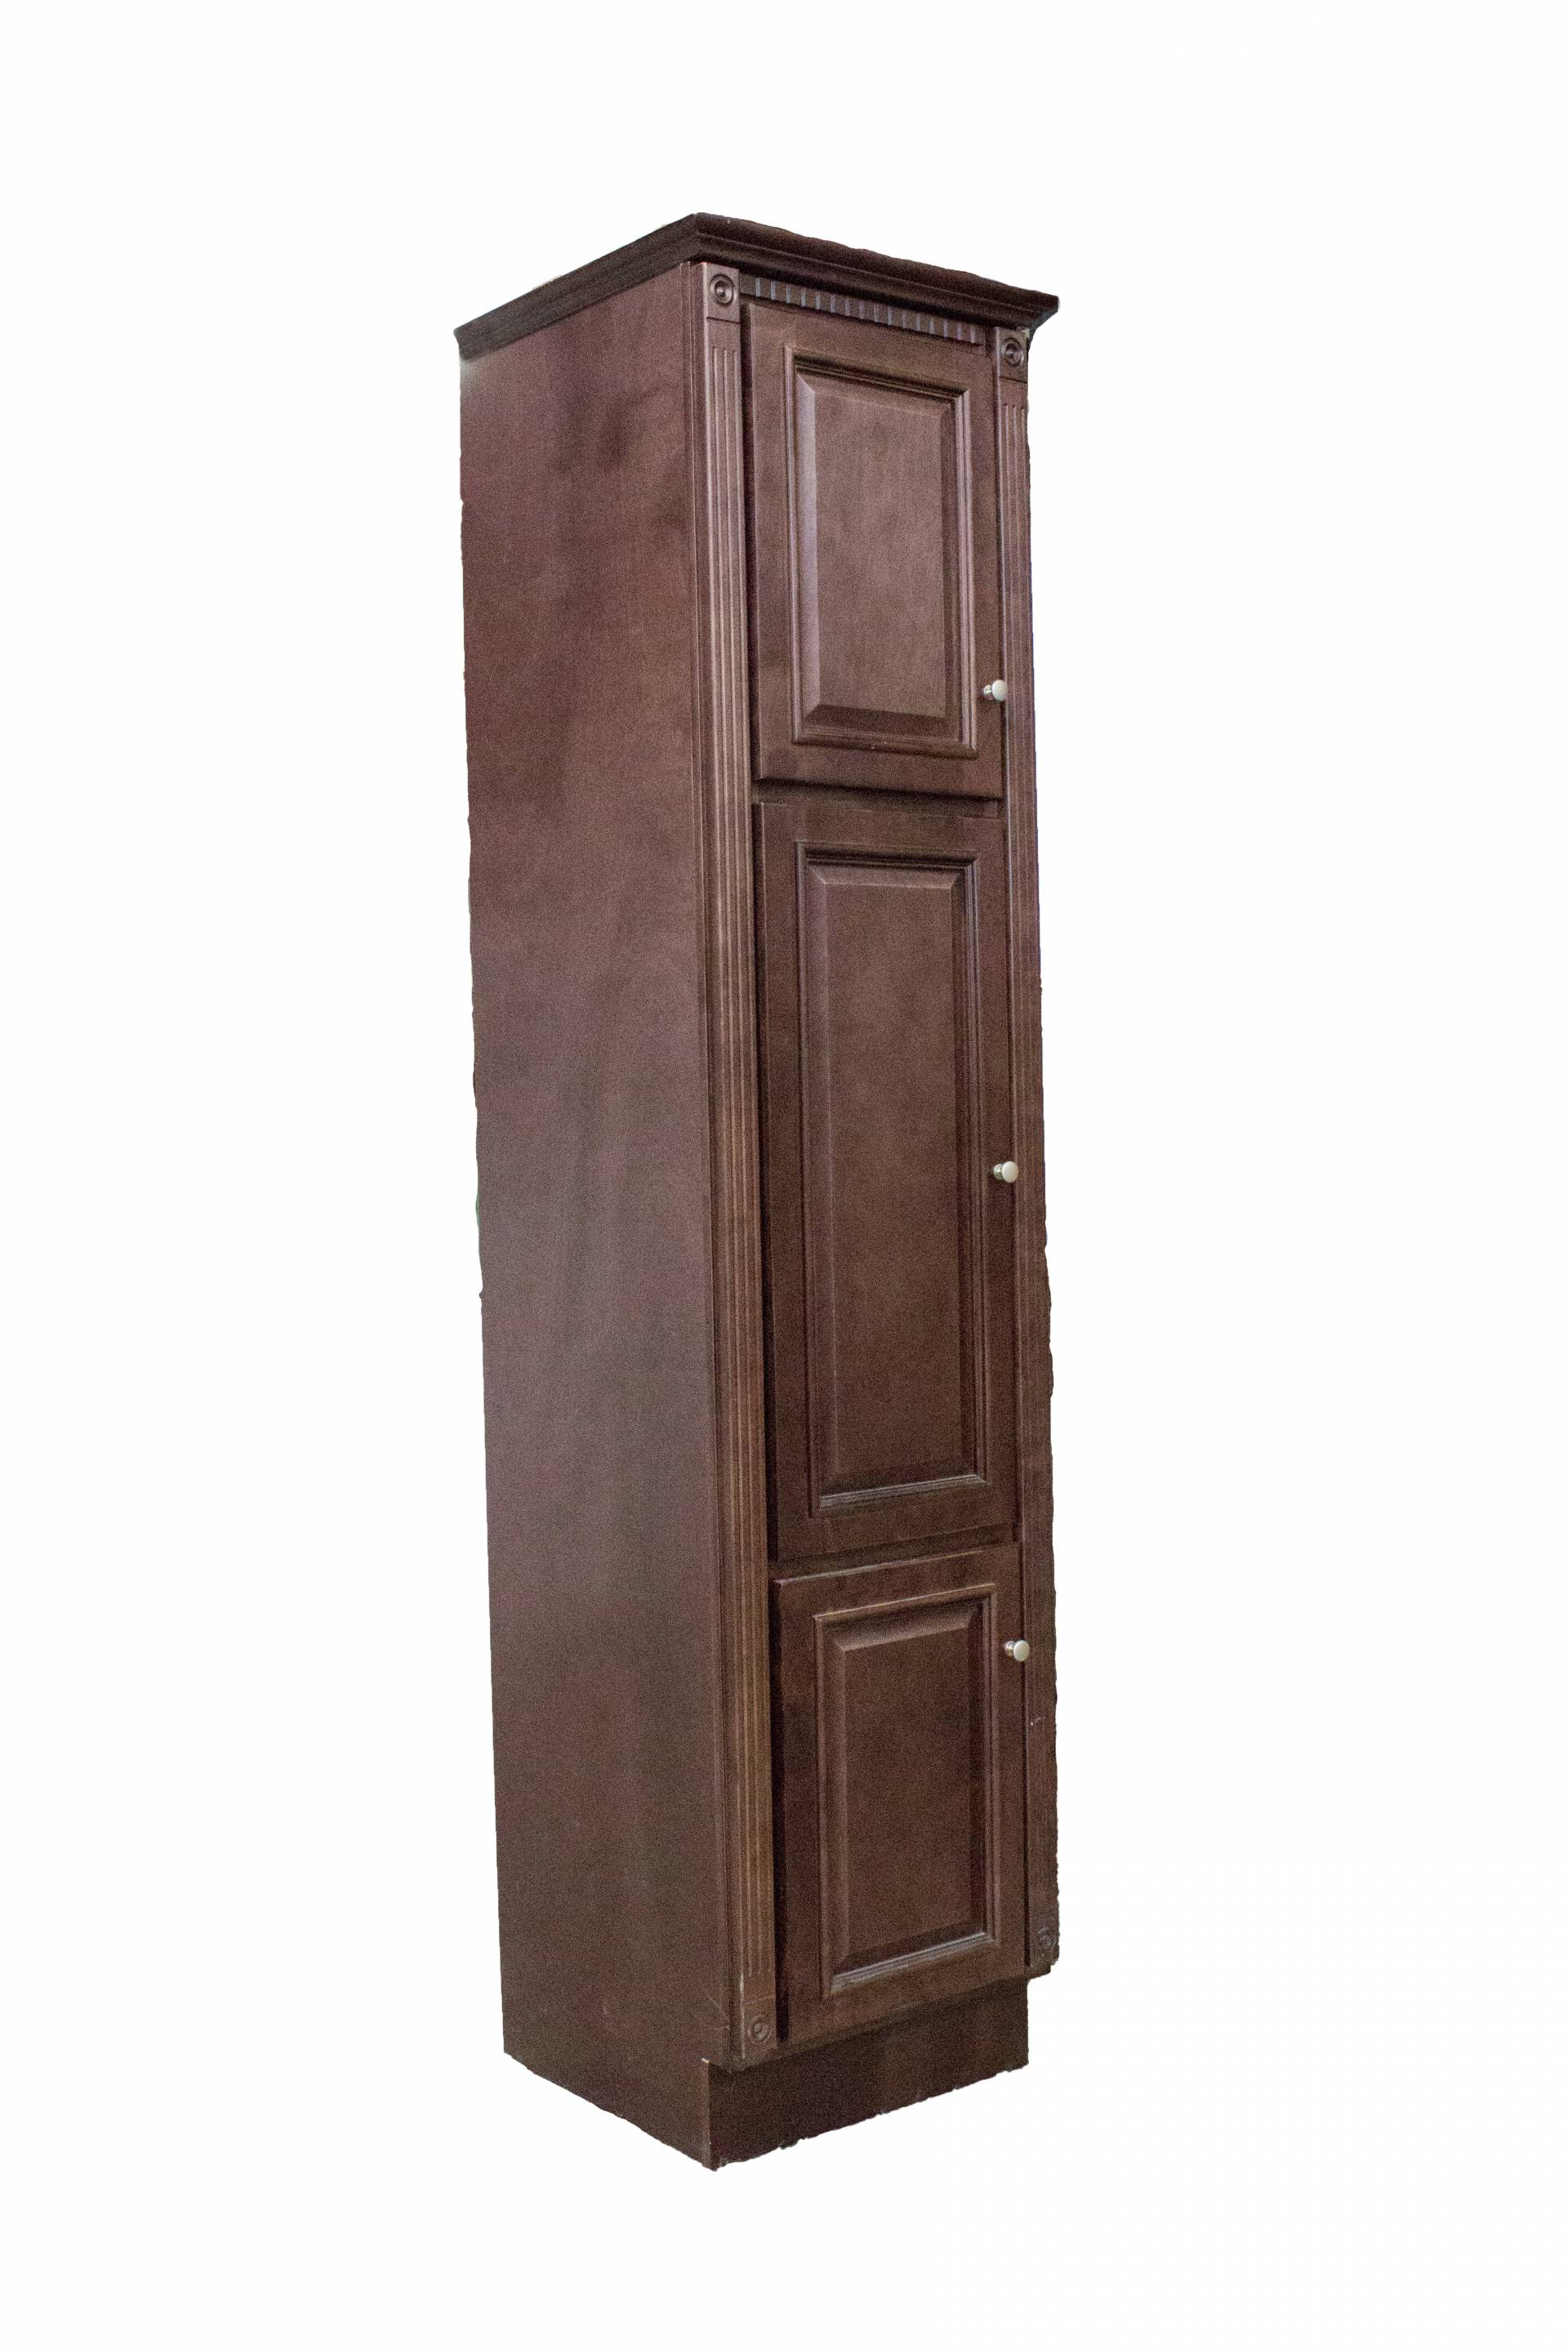 Bathroom Heritage Cherry Linen Cabinet Heeby S Surplus Inc